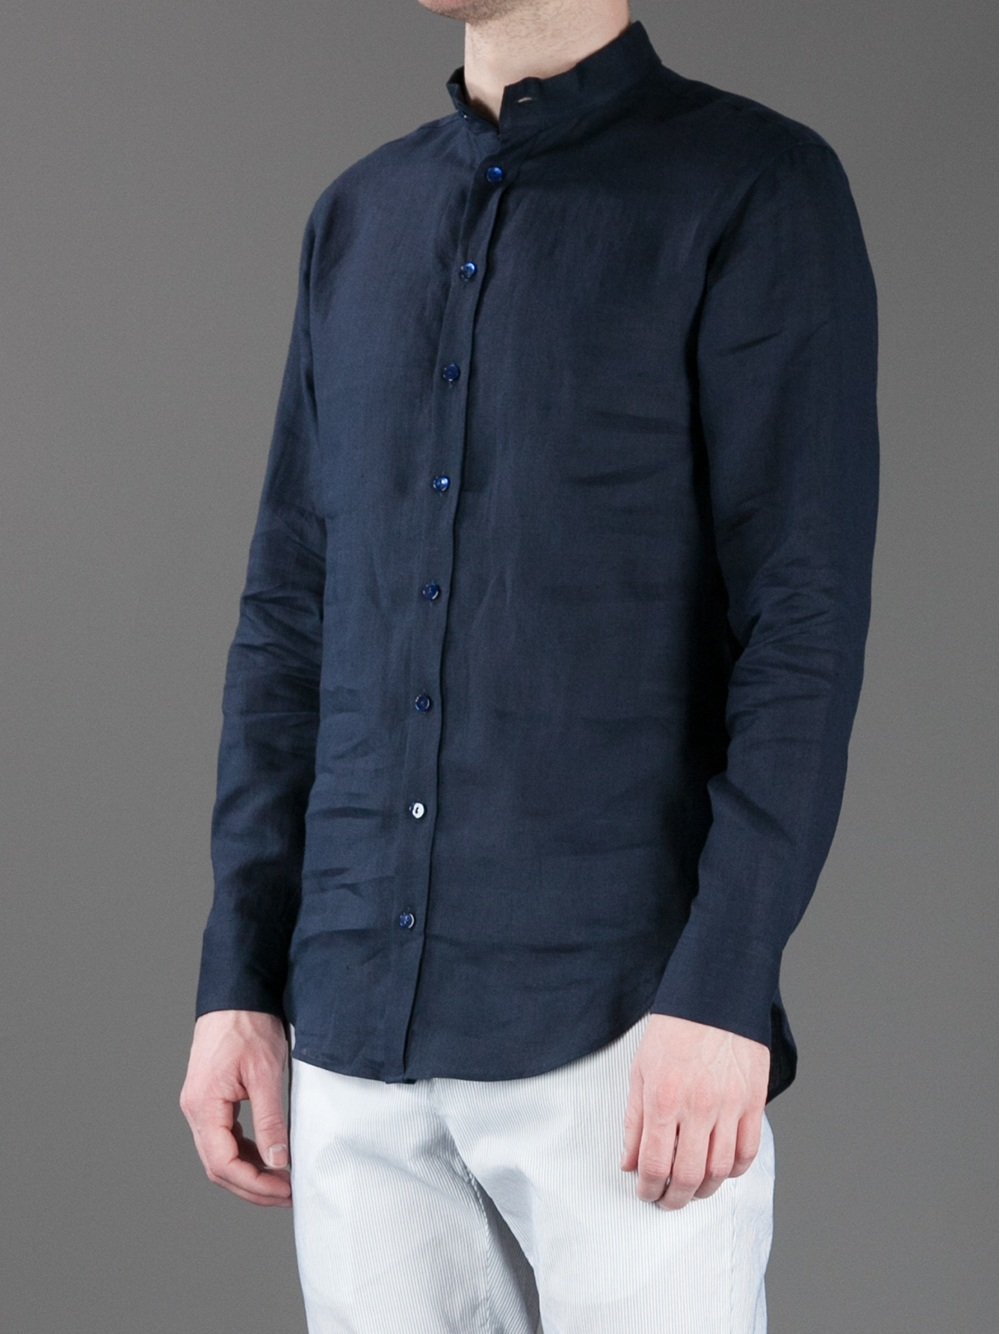 Lyst - Giorgio armani Collarless Button Down Shirt in Black for Men